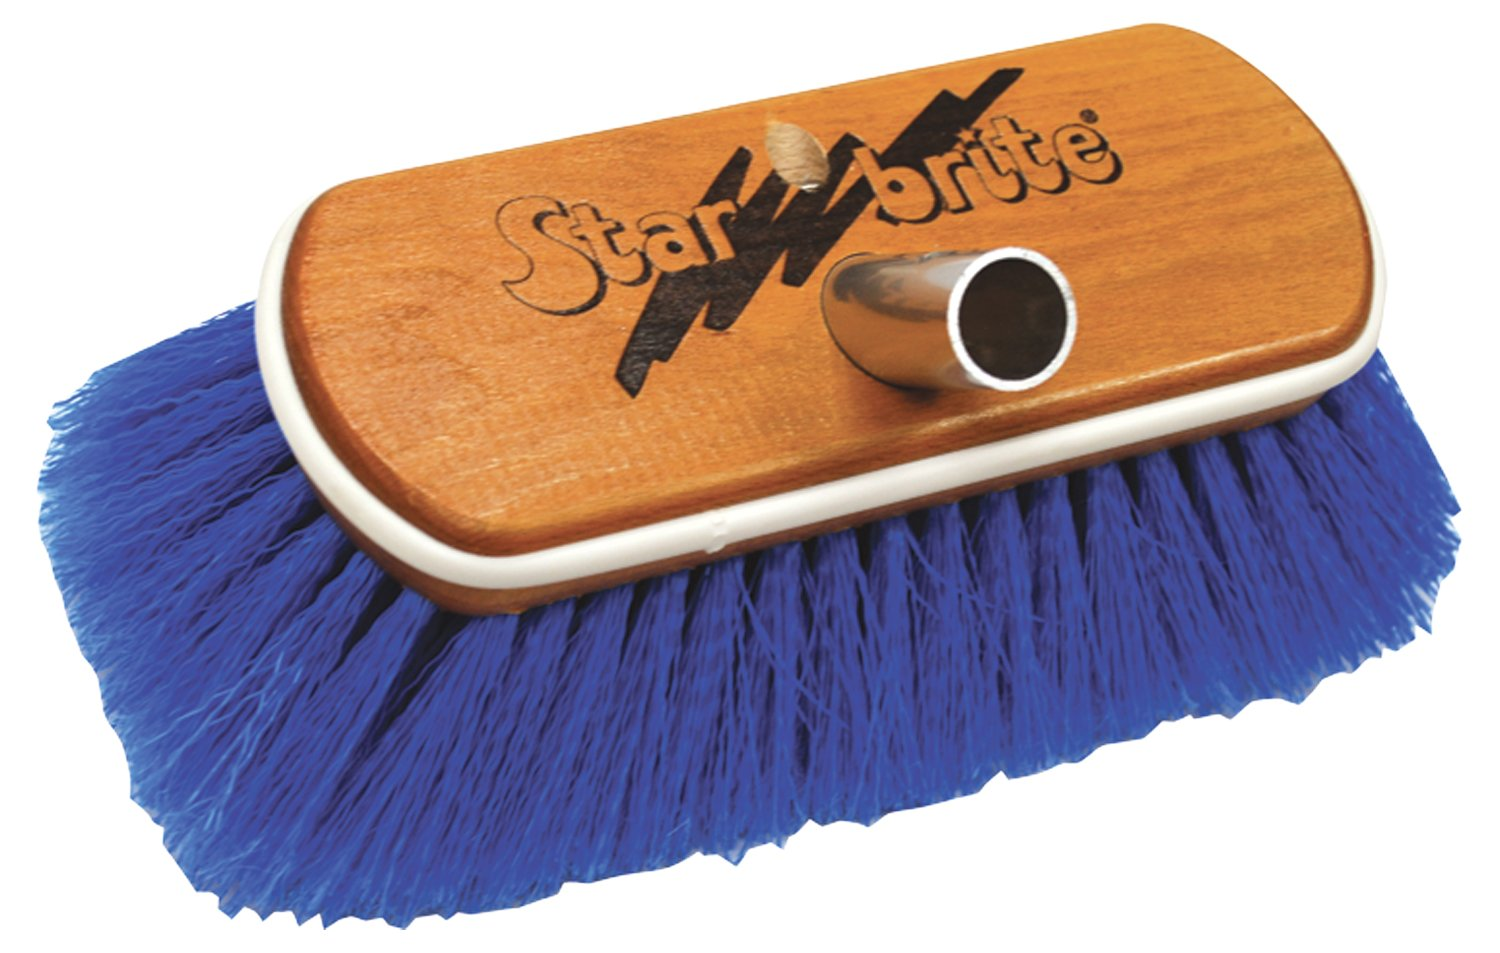 Star Brite Medium Wash Brush-Wood Block W/Bumper Brush (Blue)